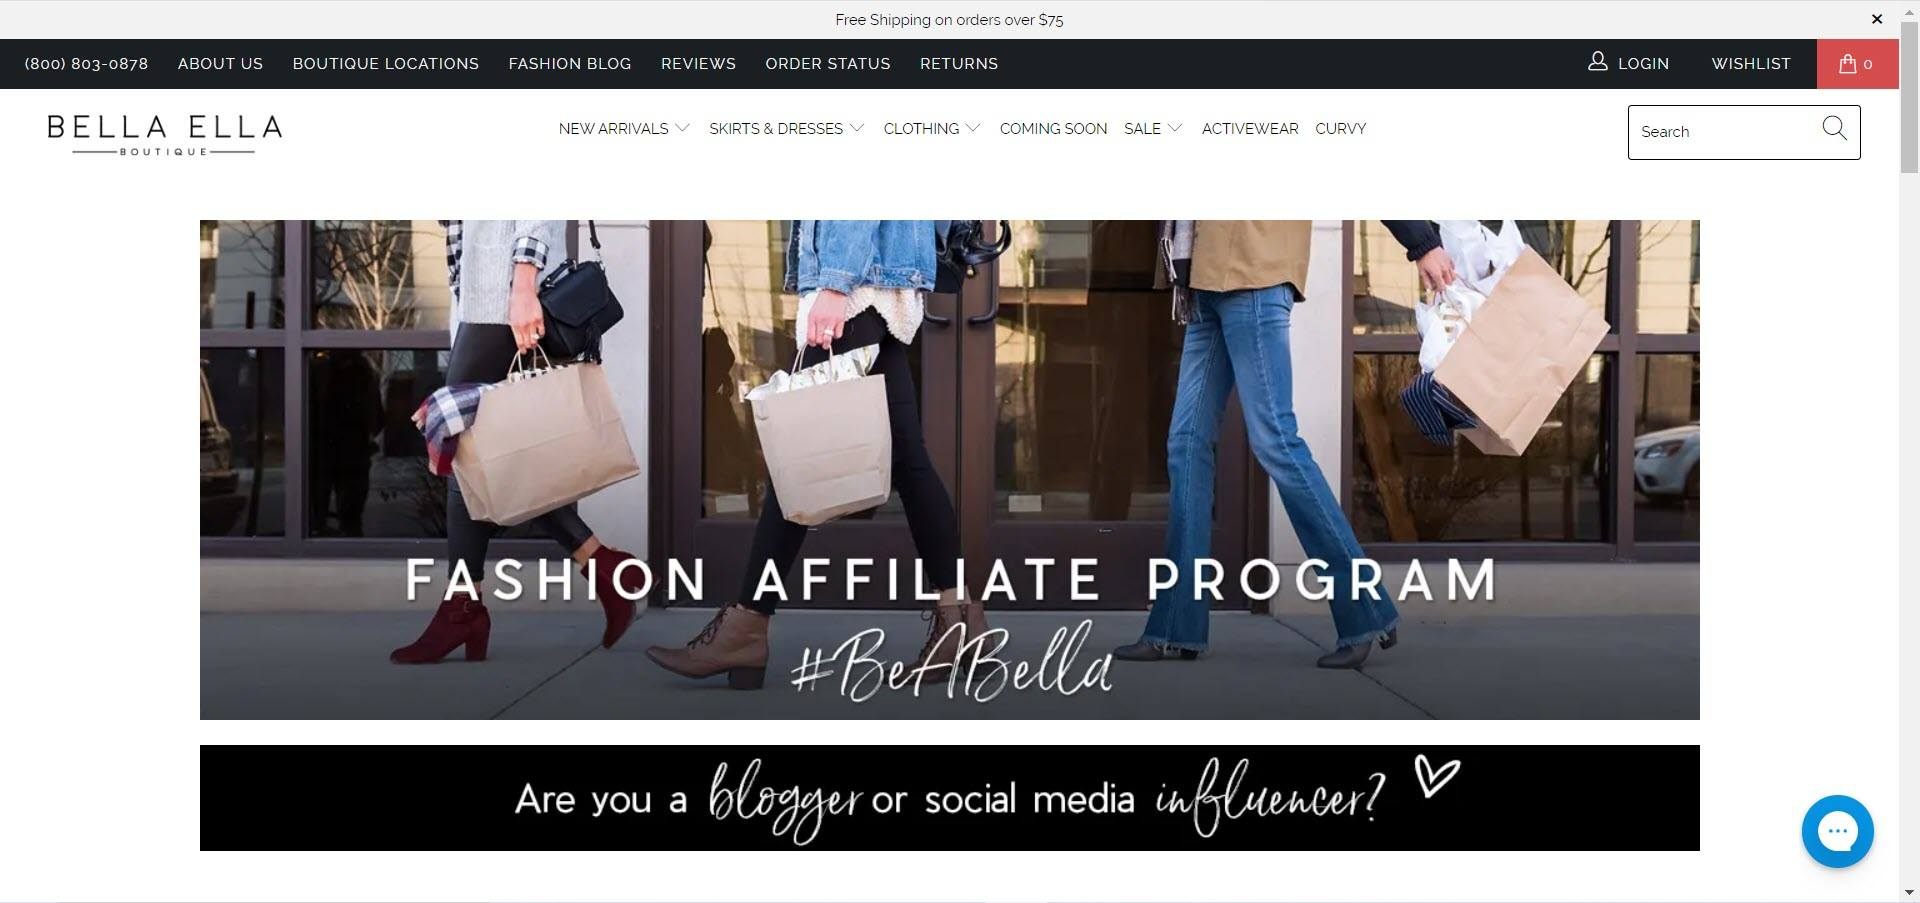 Women's Fashion Affiliate Programs - Bella Ella Affiliate